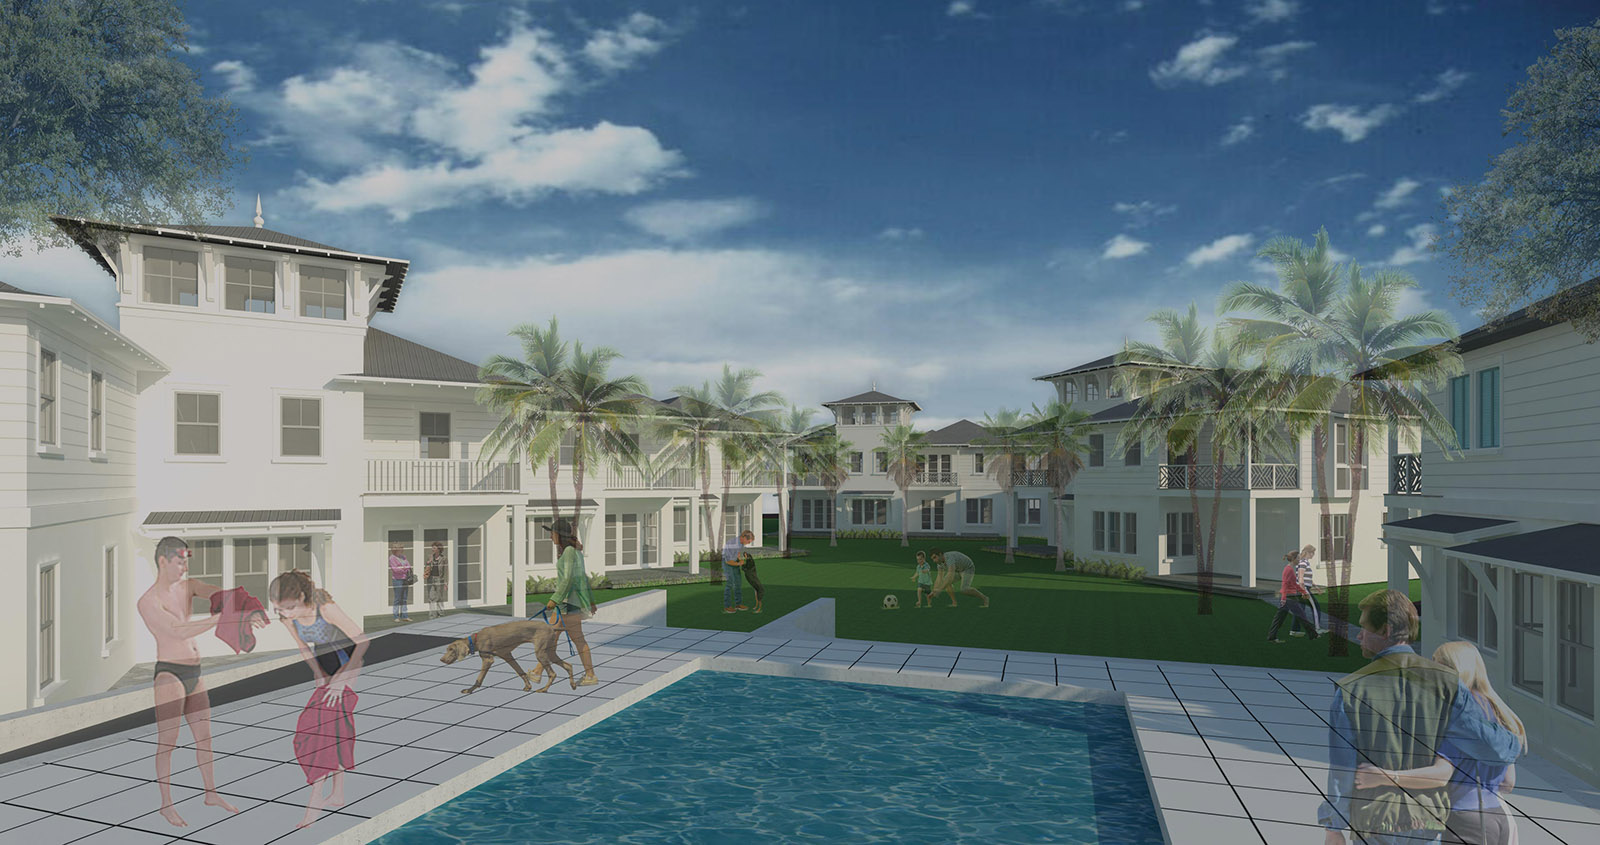 Rendered image of the pool at Villa Calissa